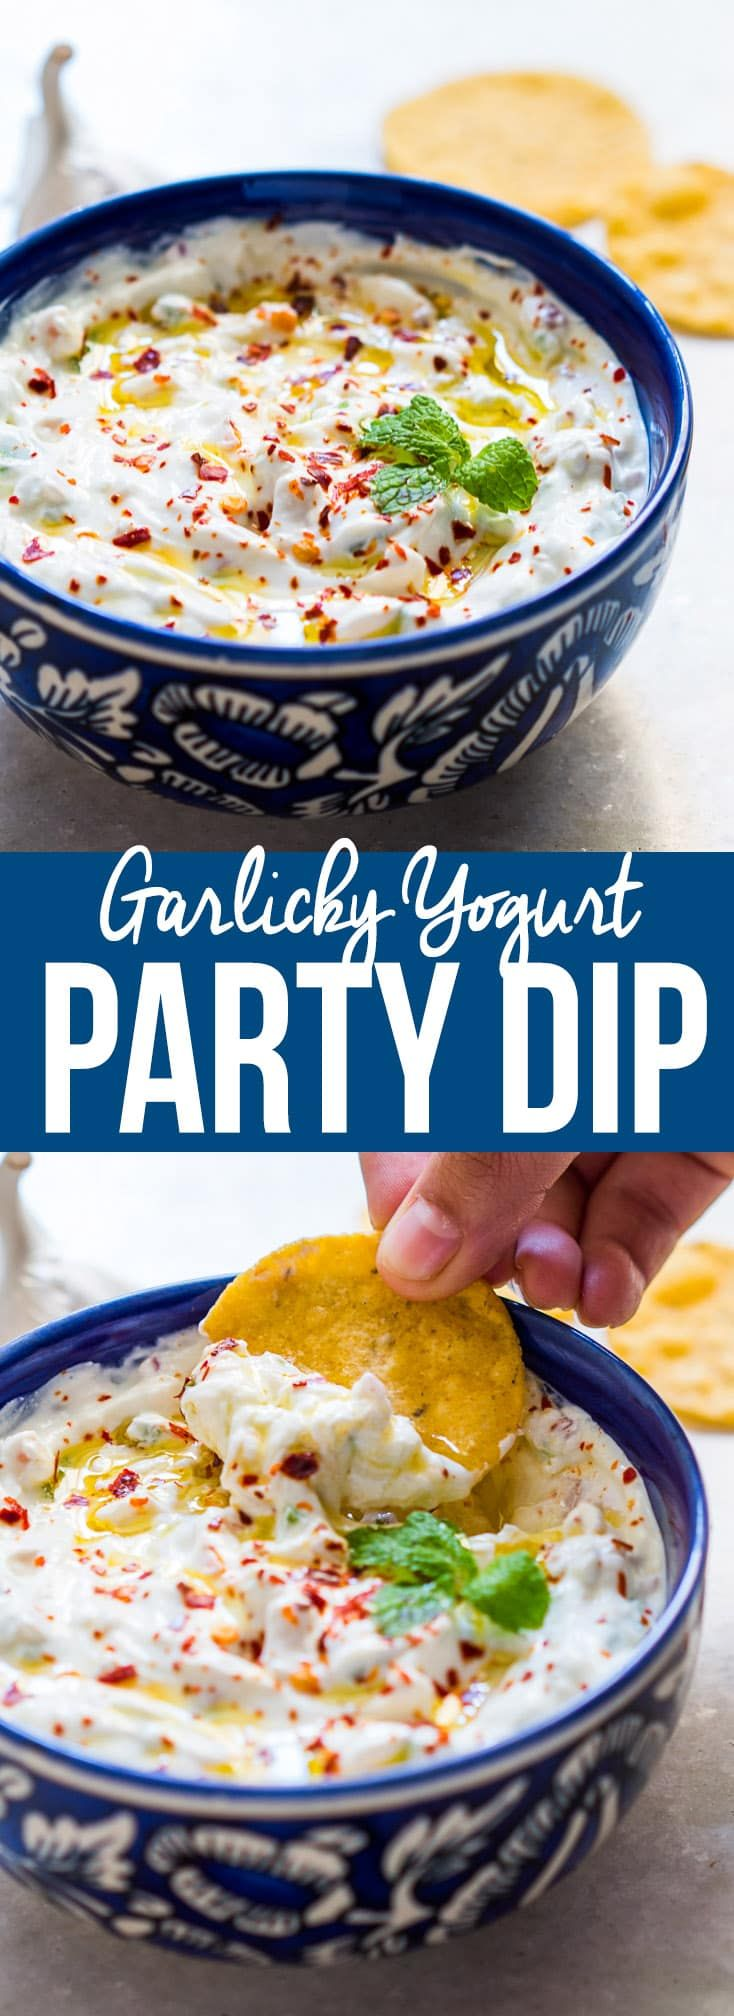 A light, refreshing and super addictive garlicky yogurt party dip to go with chips, wings, cutlets, fries and other finger food. Low calorie and healthy too.